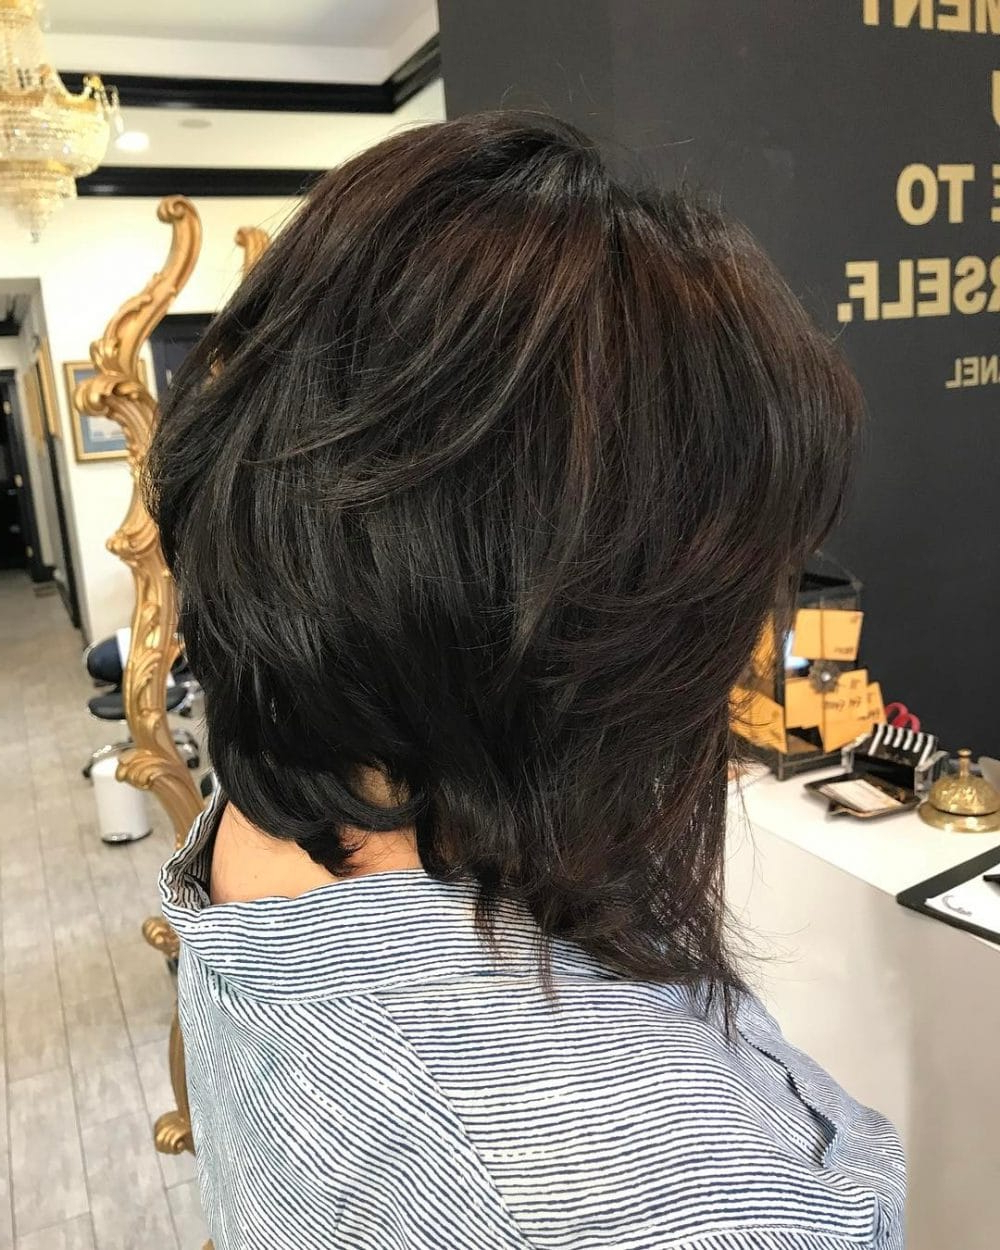 26 Modern Shag Haircuts To Try In 2019 Within Trendy Long Choppy Haircuts With A Sprinkling Of Layers (Gallery 14 of 20)